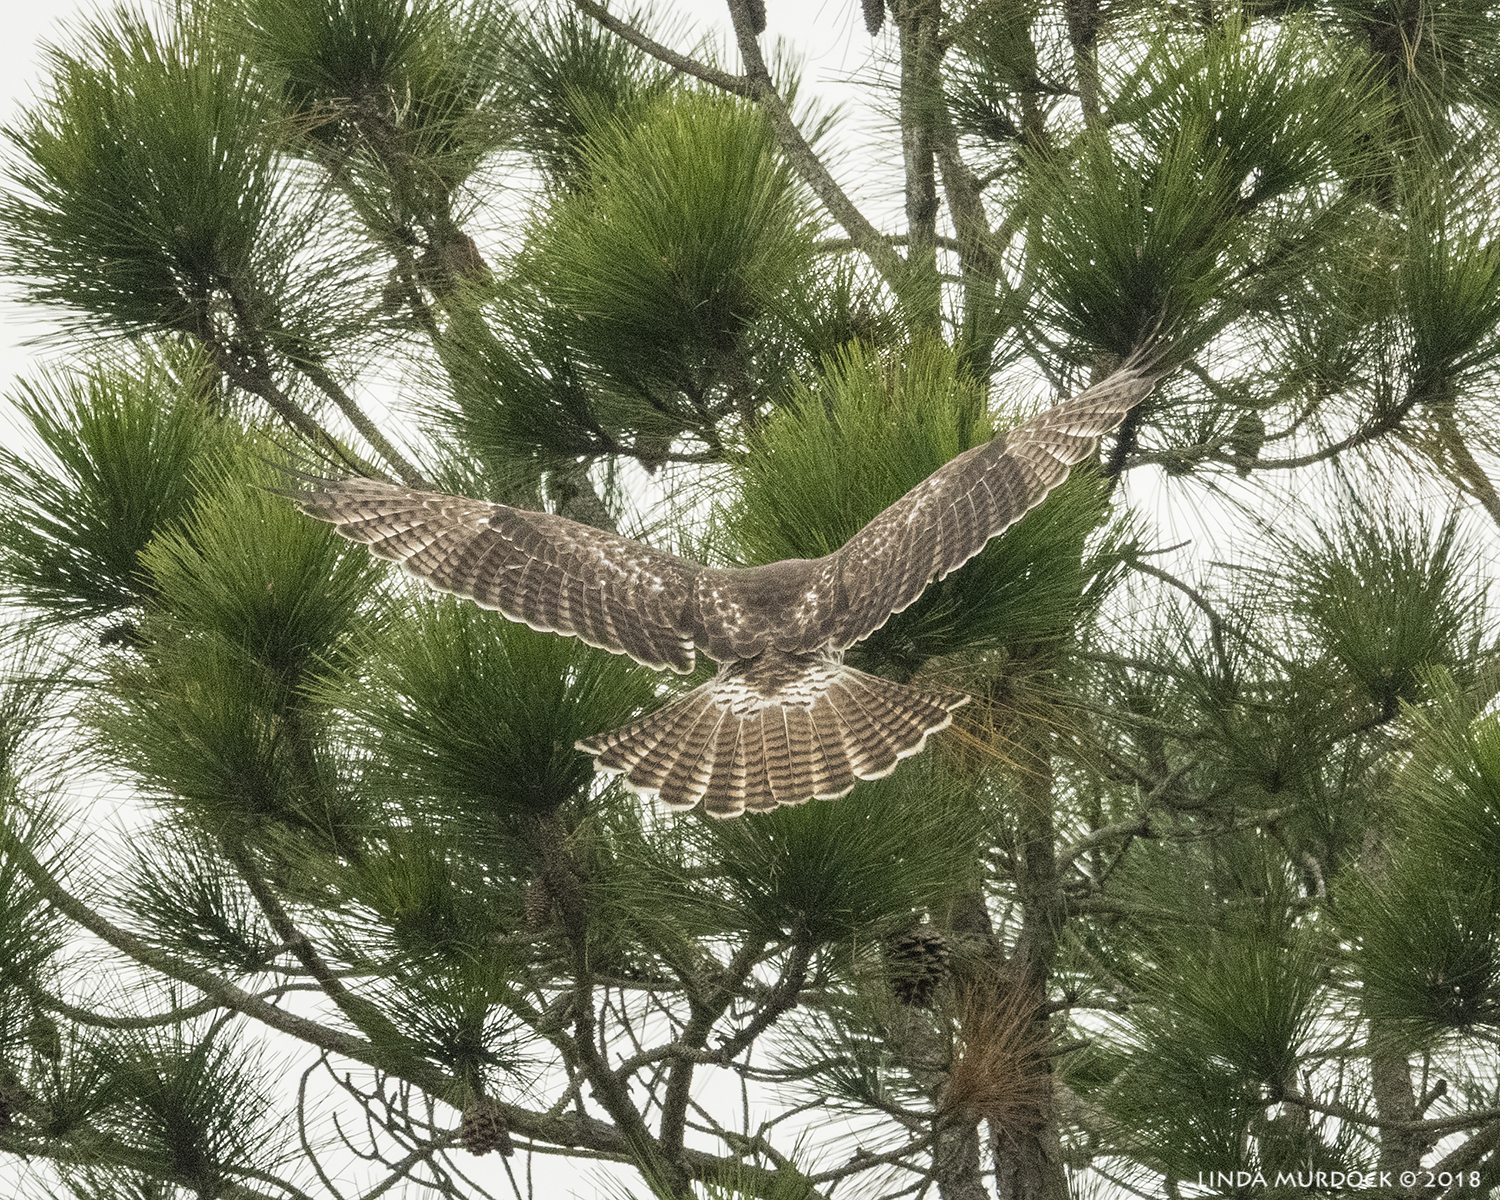 Juvenile Red-tailed Hawk heading for the pine tree    Nikon D850 with NIKKOR 500mm f/4E VR with Nikon 1.4x TC ~ 1/2000 sec f/5.6 ISO 1600; hand-held